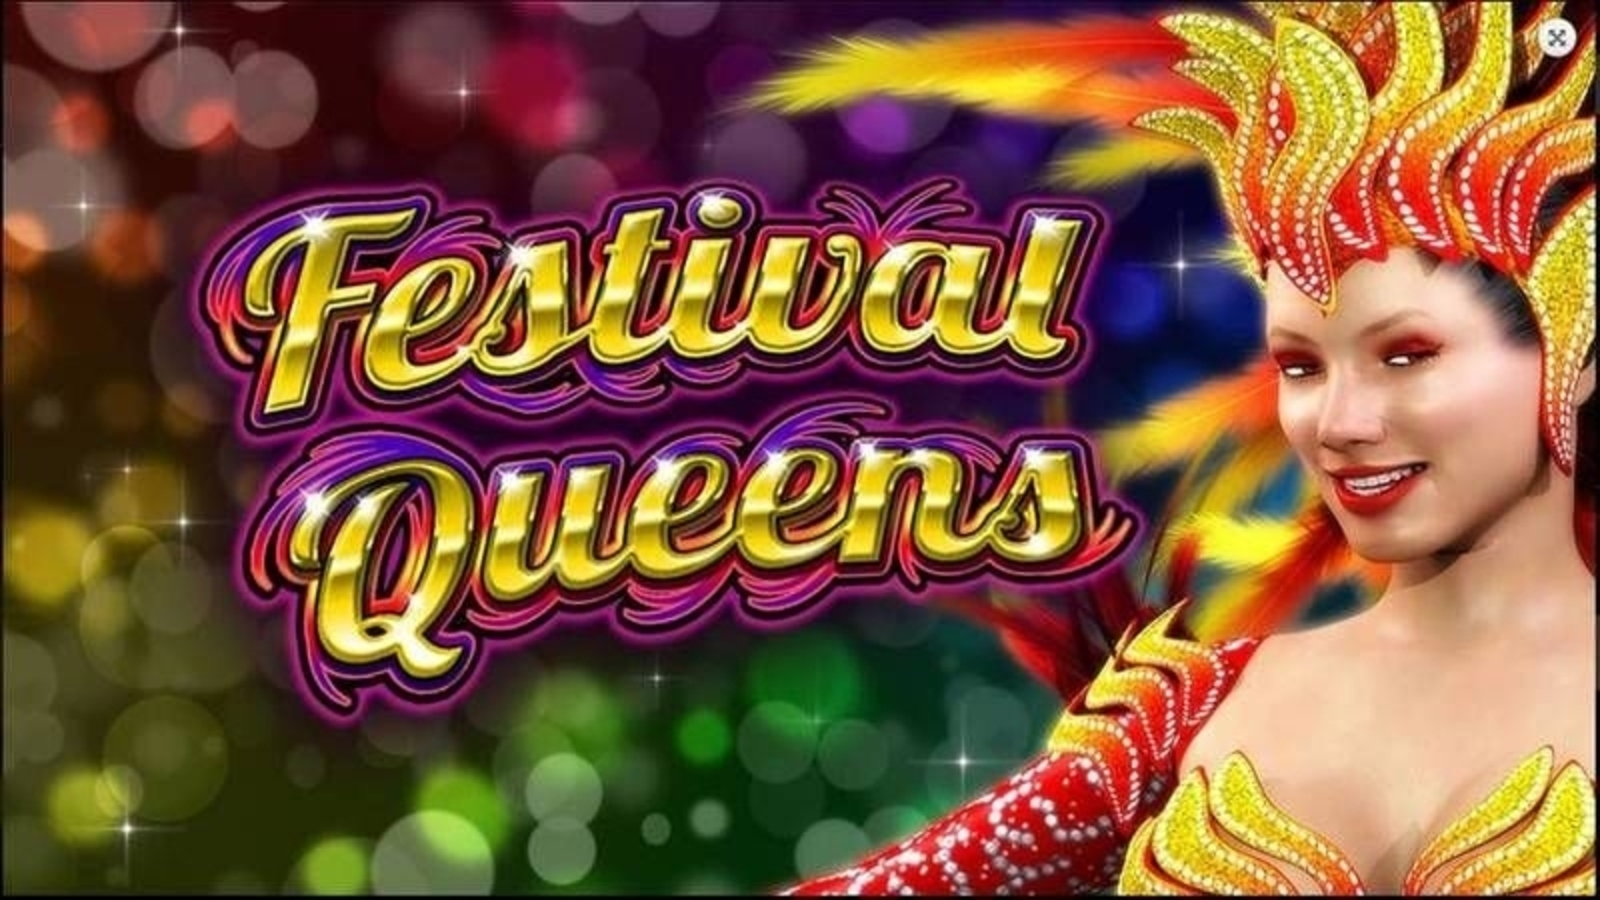 Se Festival Queen Online Slot Demo Game, 2 By 2 Gaming